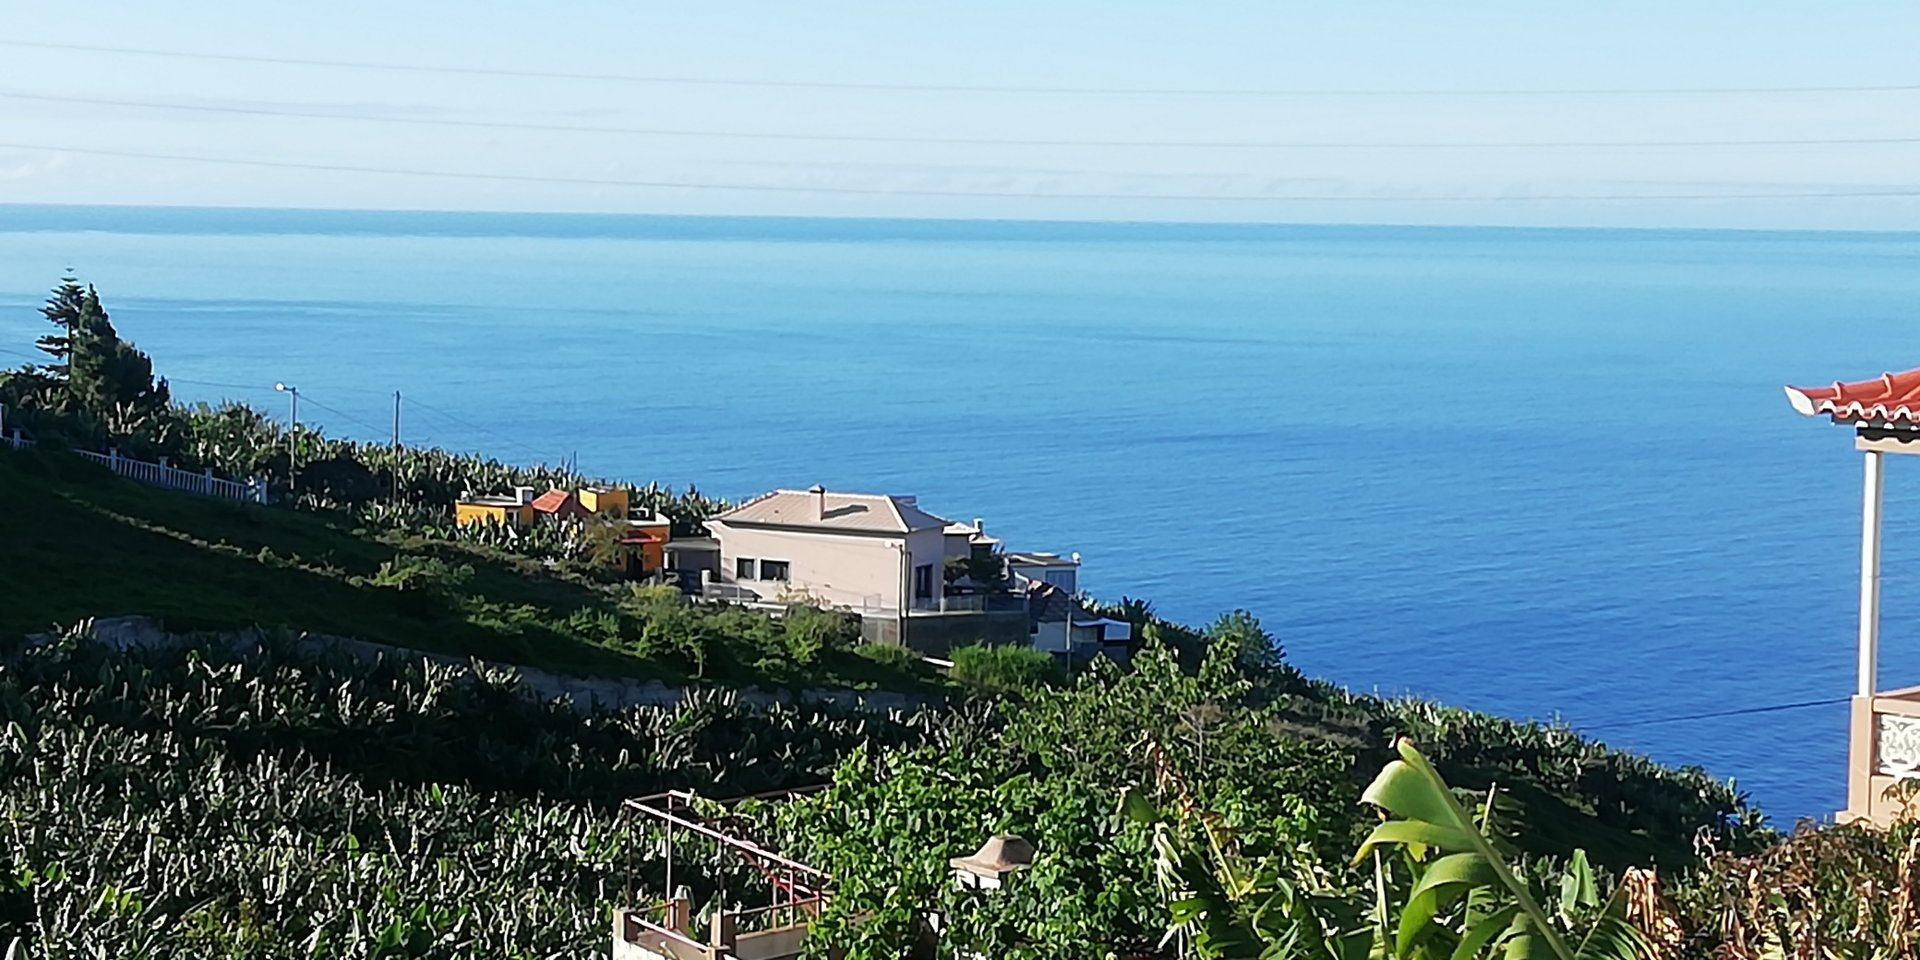 Building land with ocean view in Ponta do Sol